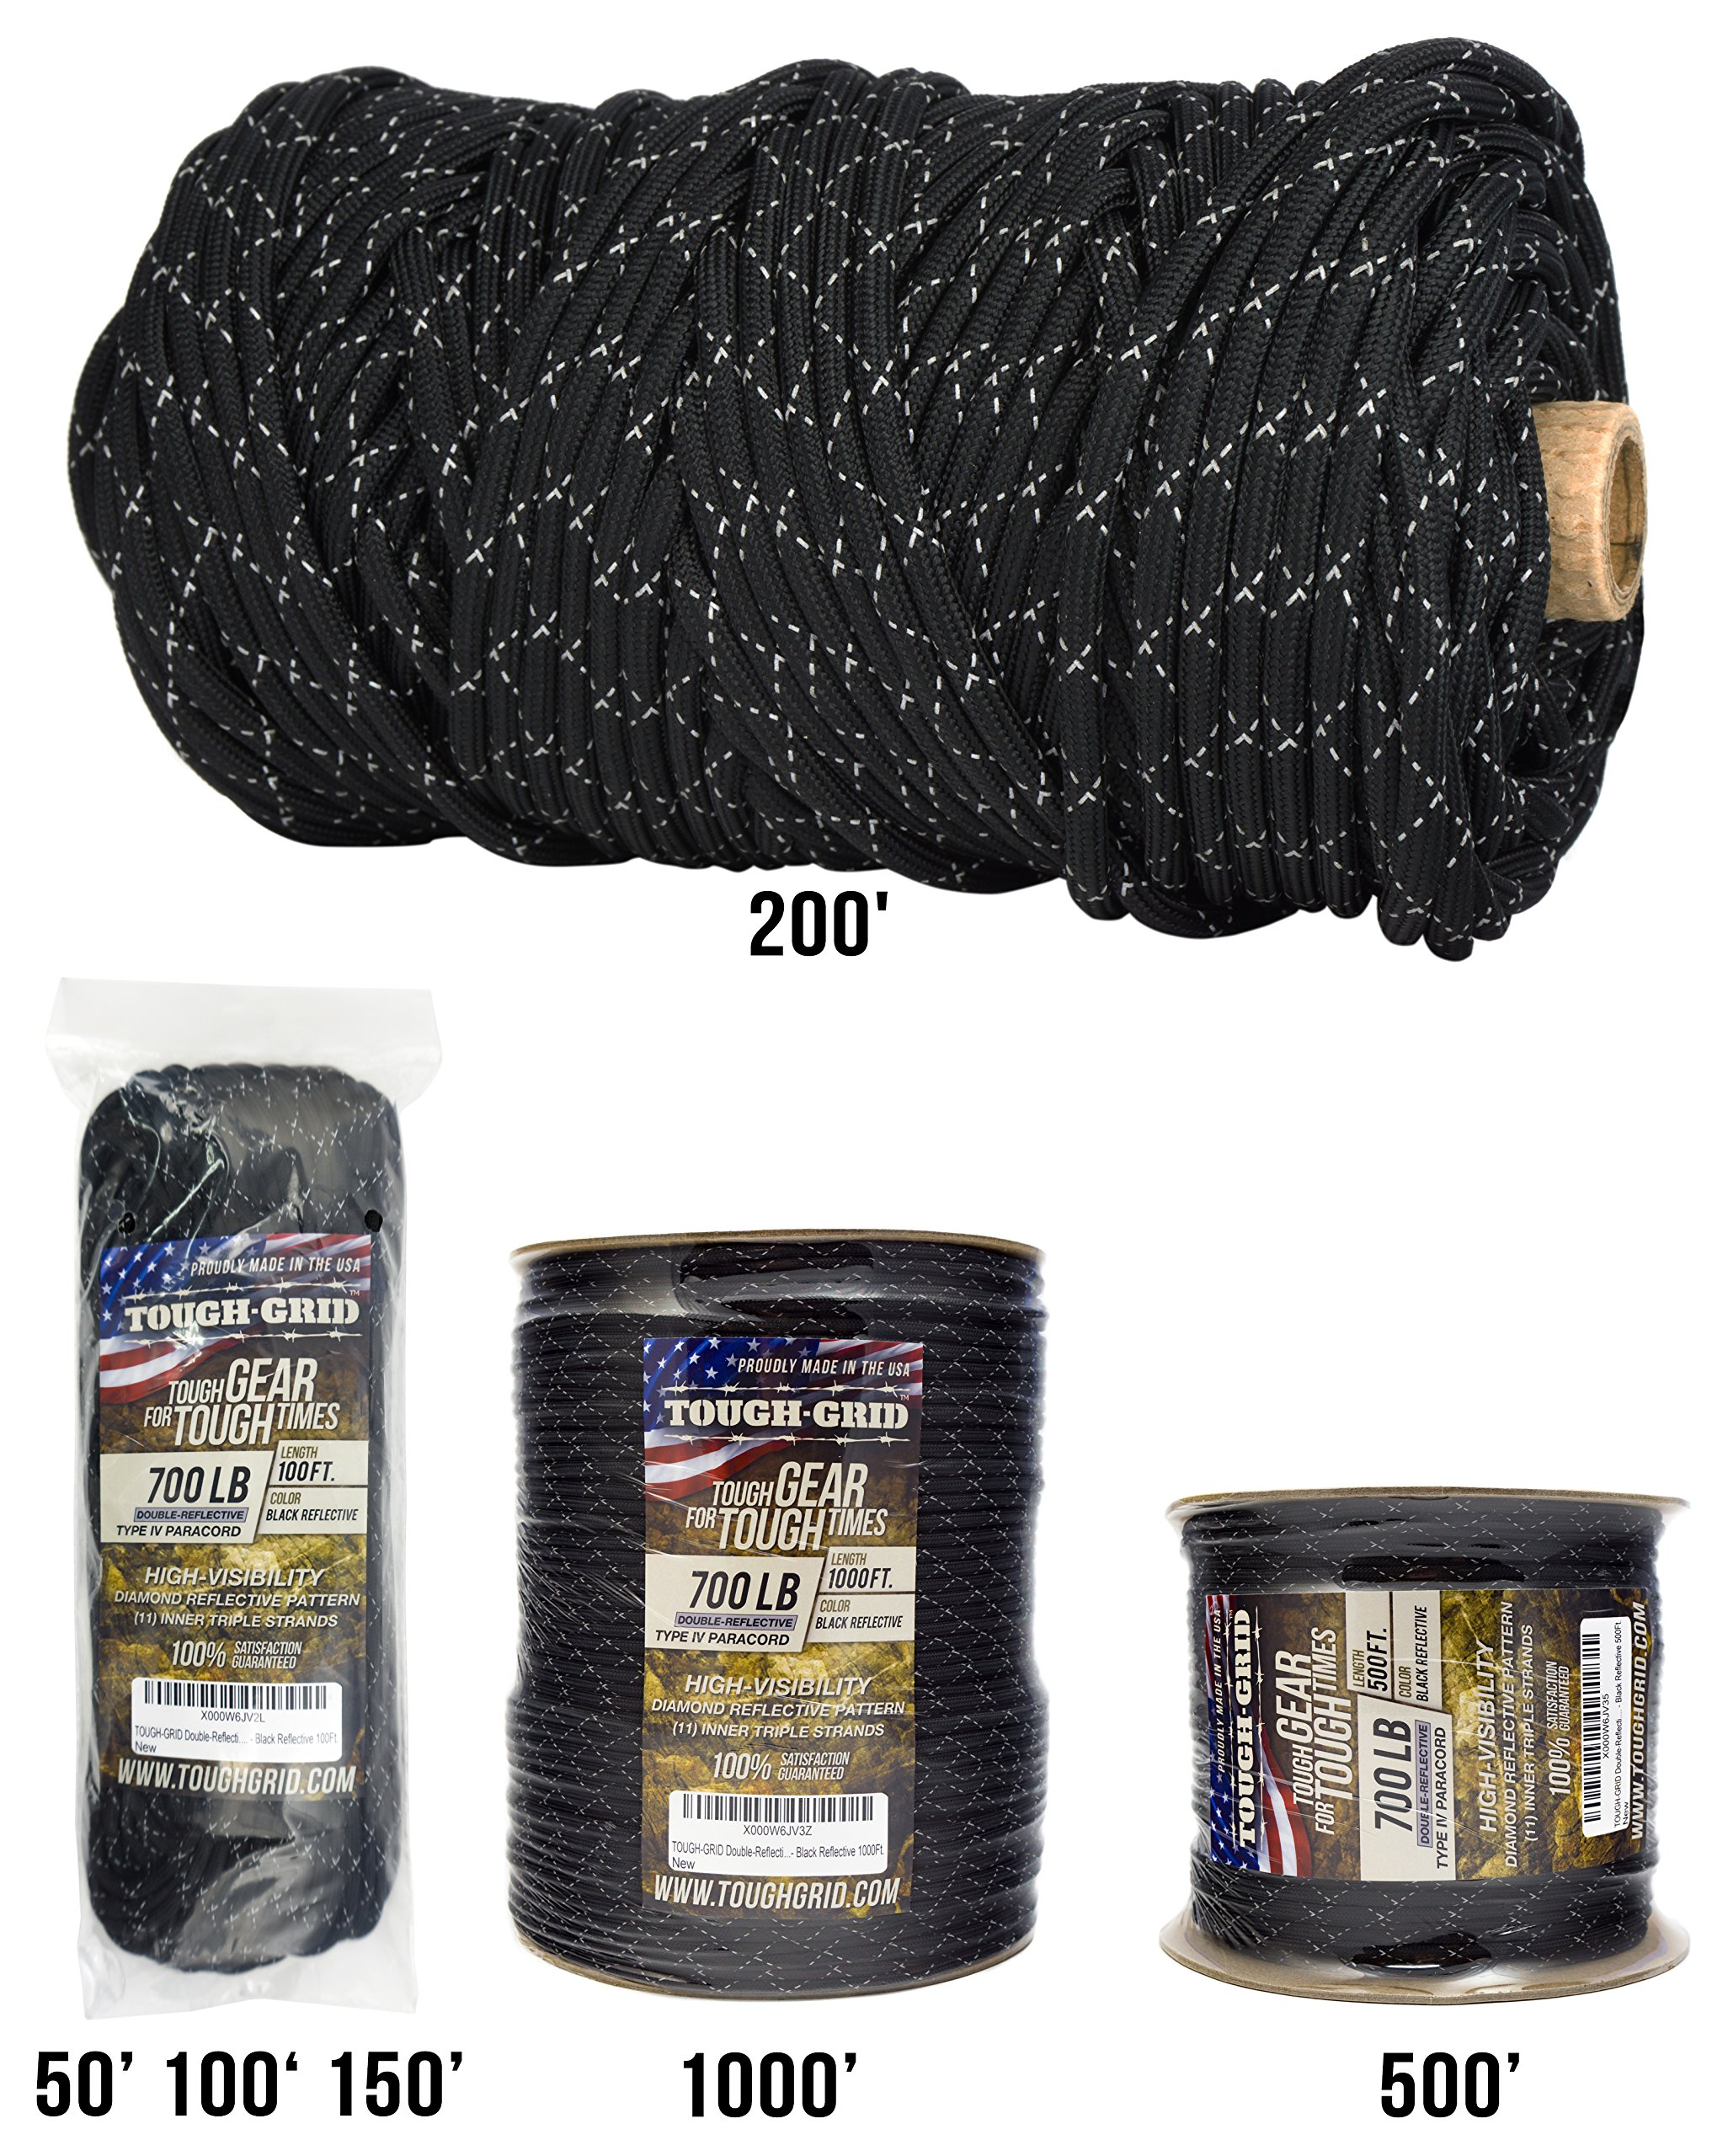 TOUGH-GRID New 700lb Double-Reflective Paracord/Parachute Cord - 2 Vibrant Retro-Reflective Strands for The Ultimate High-Visibility Cord - 100% Nylon - Made in USA. - 500Ft. Black Reflective by TOUGH-GRID (Image #1)